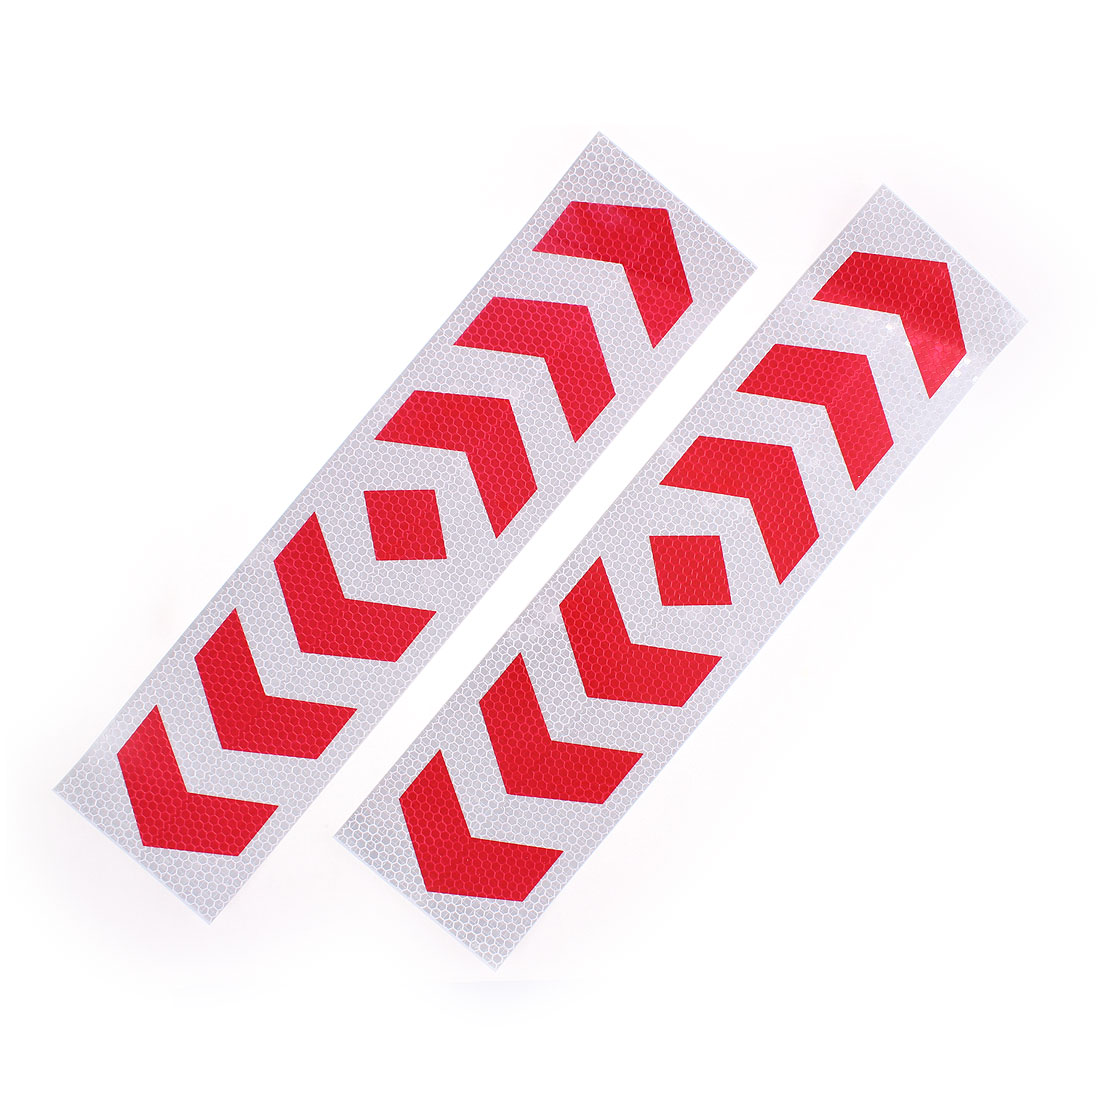 2 Pcs Self Adhesive Type Car Reflective Warning Sign Marking Sticker Tape Red White